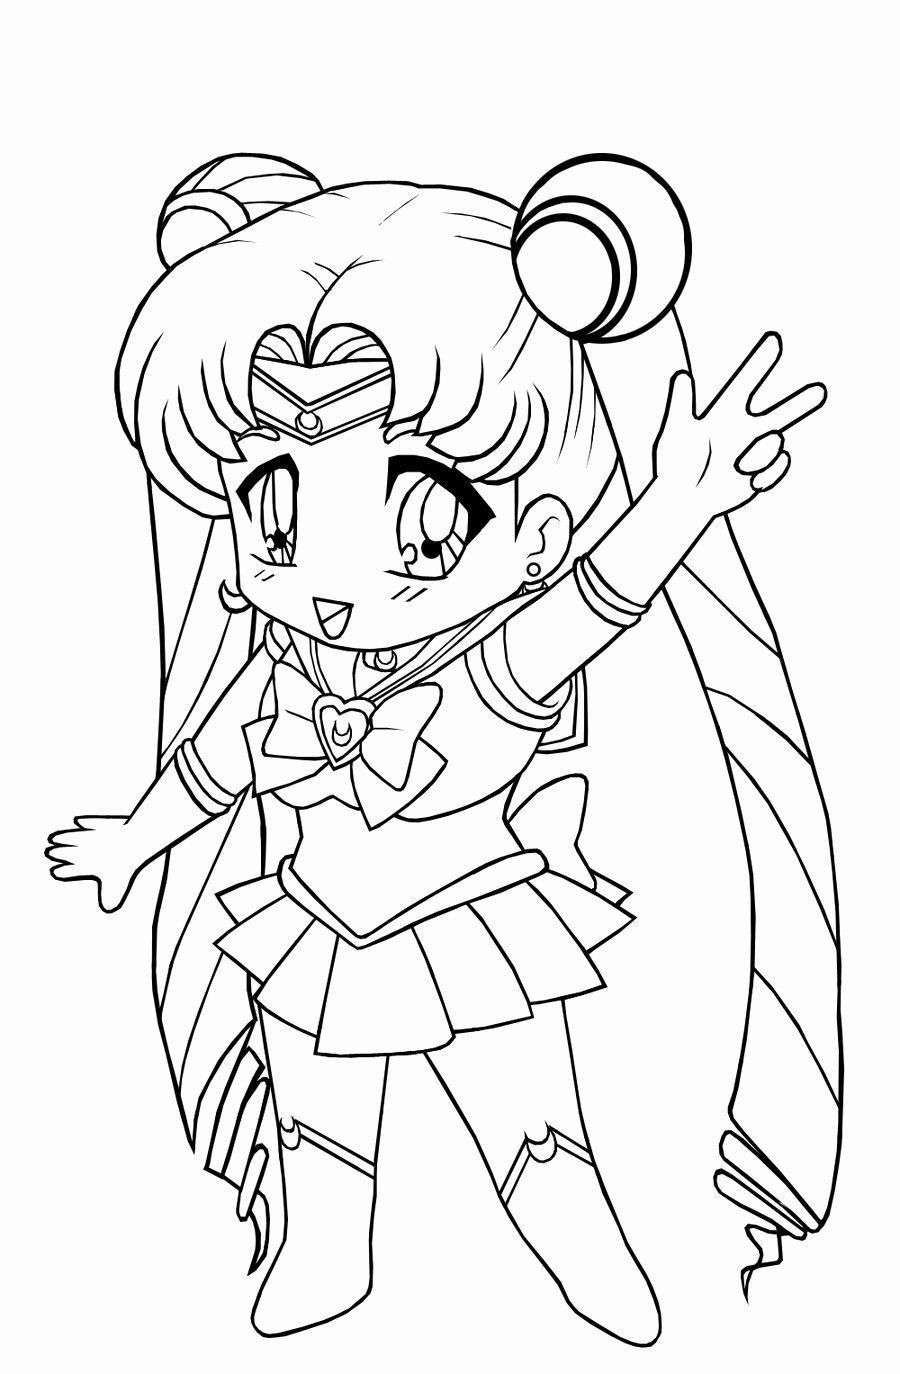 Anime Coloring Books For Adults Luxury Awesome Anime Coloring Pages In 2020 Sailor Moon Coloring Pages Chibi Coloring Pages Moon Coloring Pages